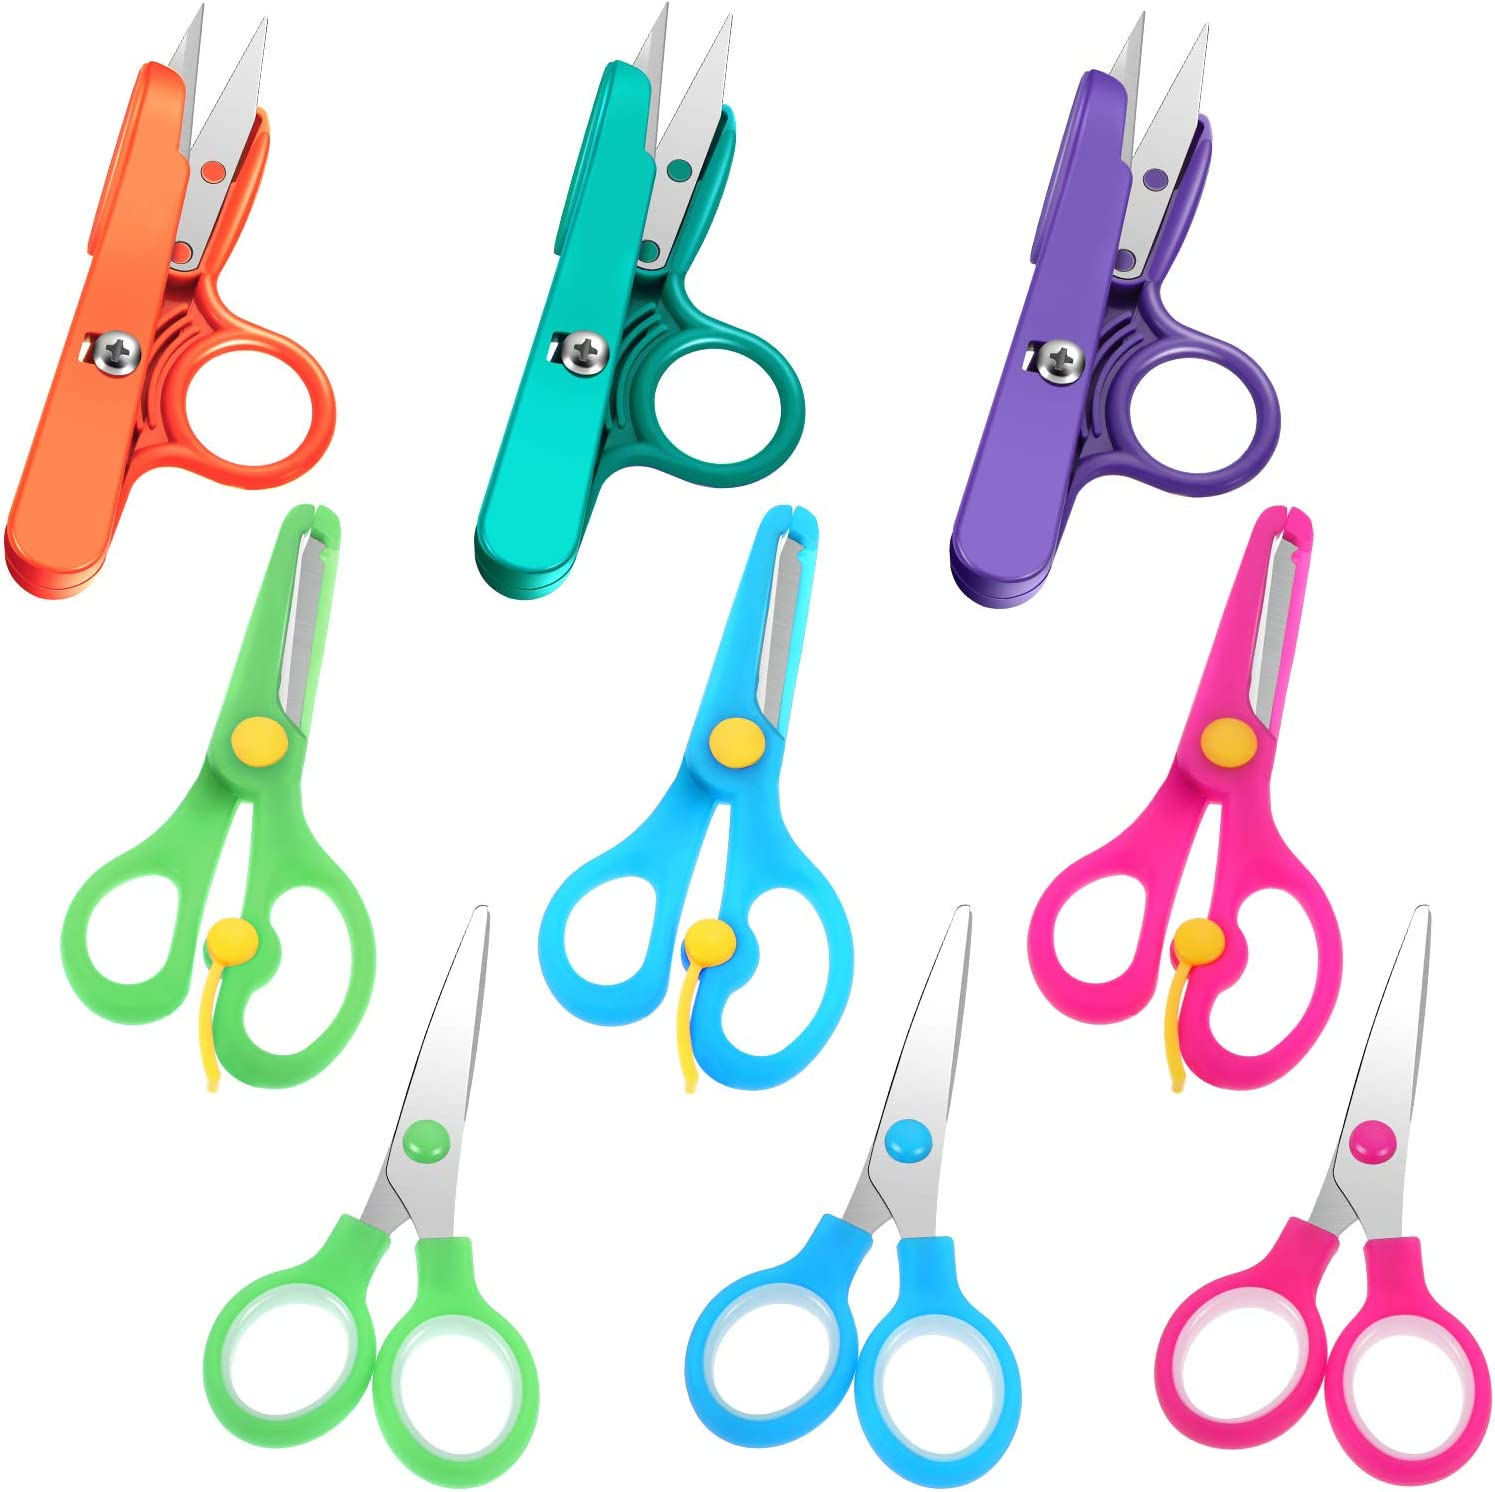 sewing shears Embroidery scissors quilting color craft supplies Fibre toolkit colorful accessory crochet knitting tool yarn scissors